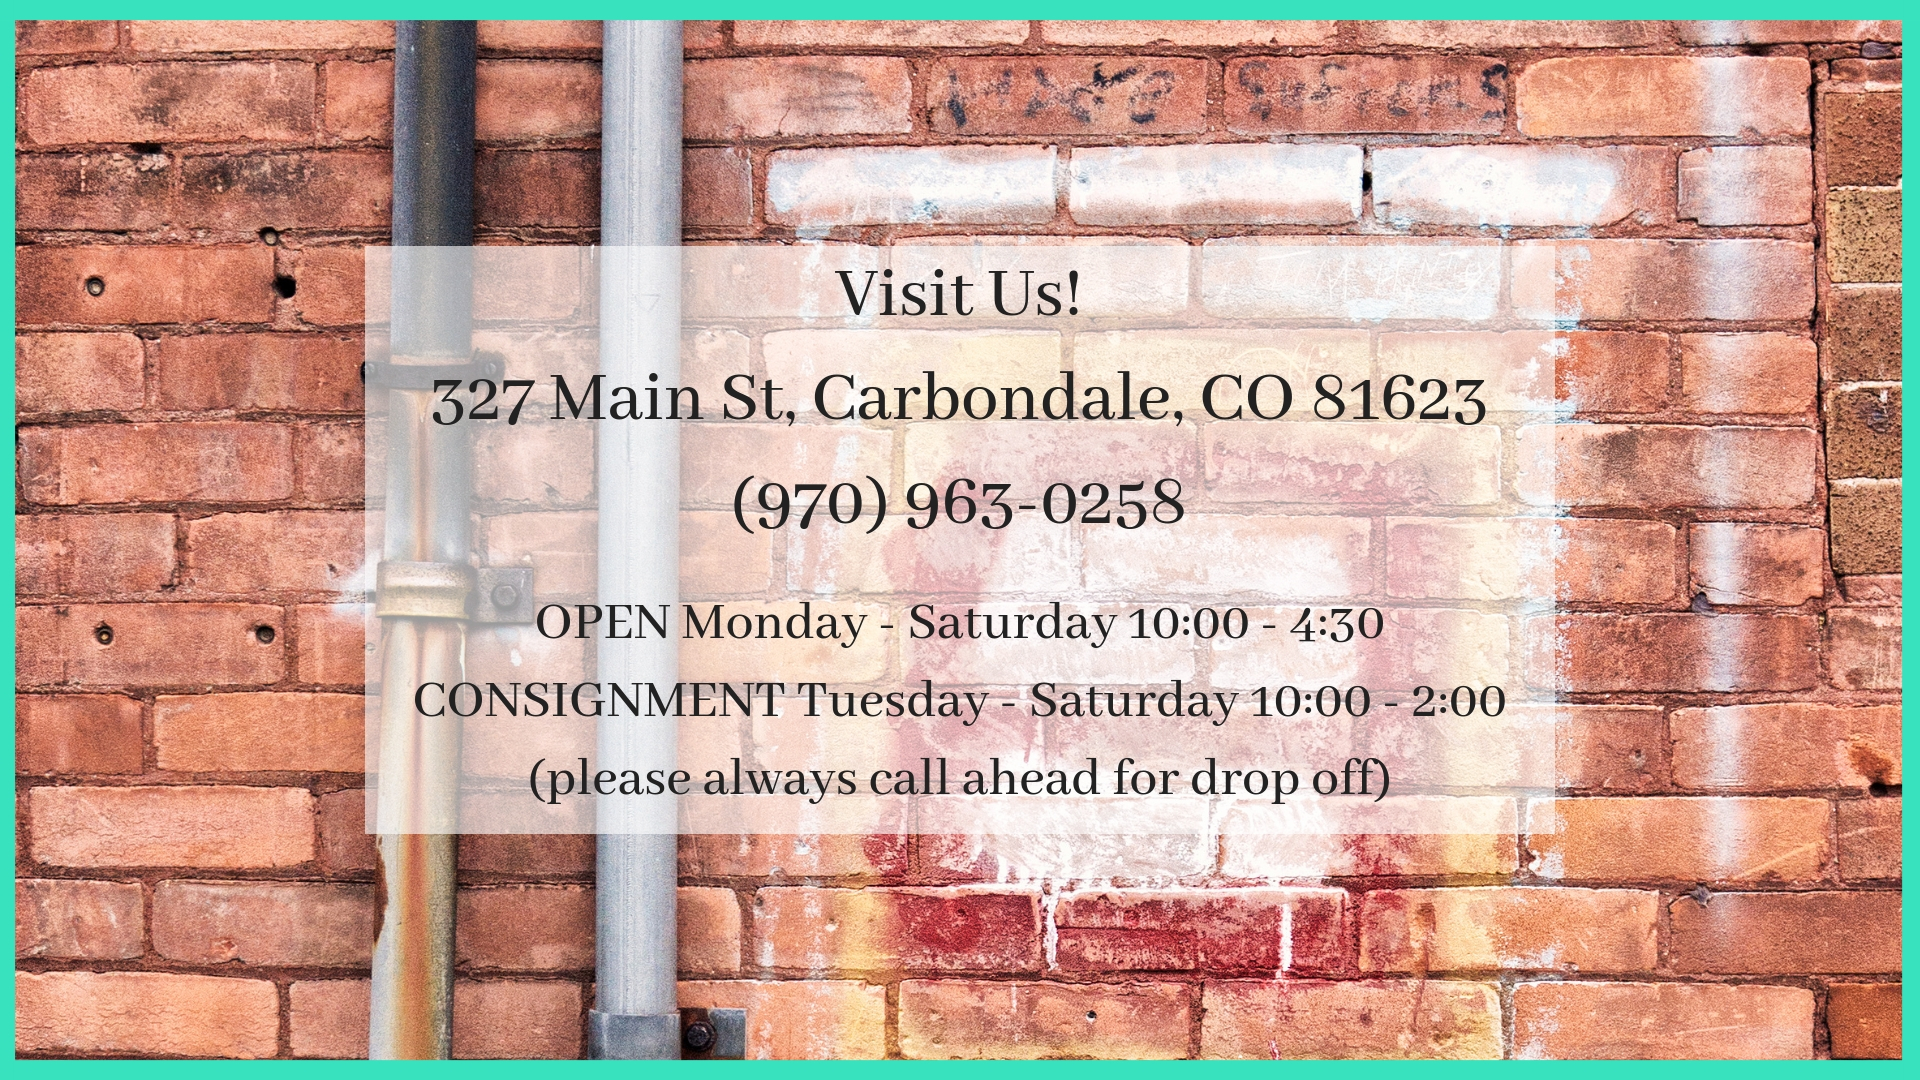 Visit Us!327 Main St, Carbondale, CO 81623(970) 963-0258OPEN Monday Through Saturday, 10_00 - 4_30 p.m.CONSIGNMENT between 10_00 a.m. - 3_00 p.m.(please always call ahead for drop off).jpg